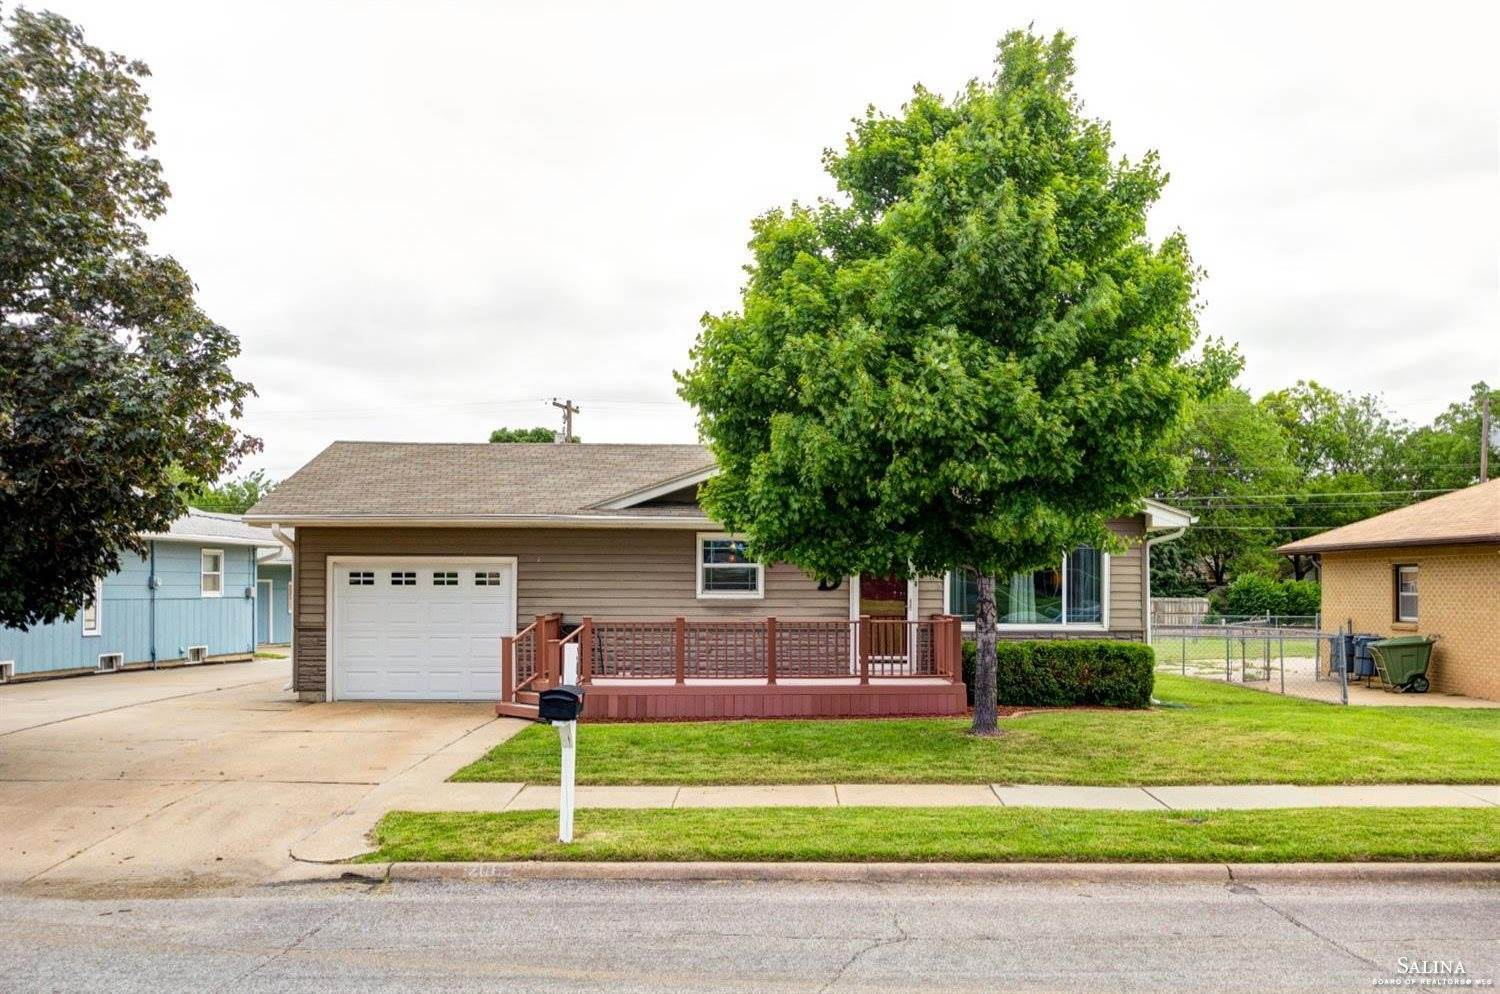 2063 South 4th Street, Salina, KS 67401